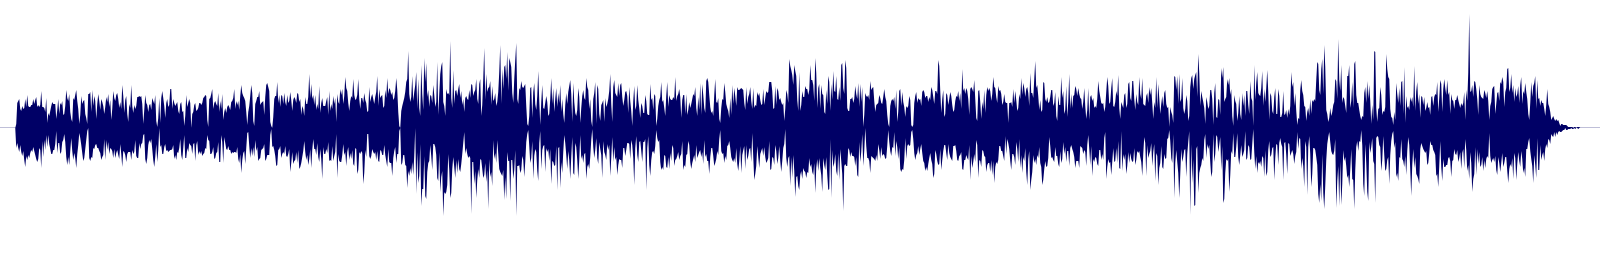 waveform of track #145932